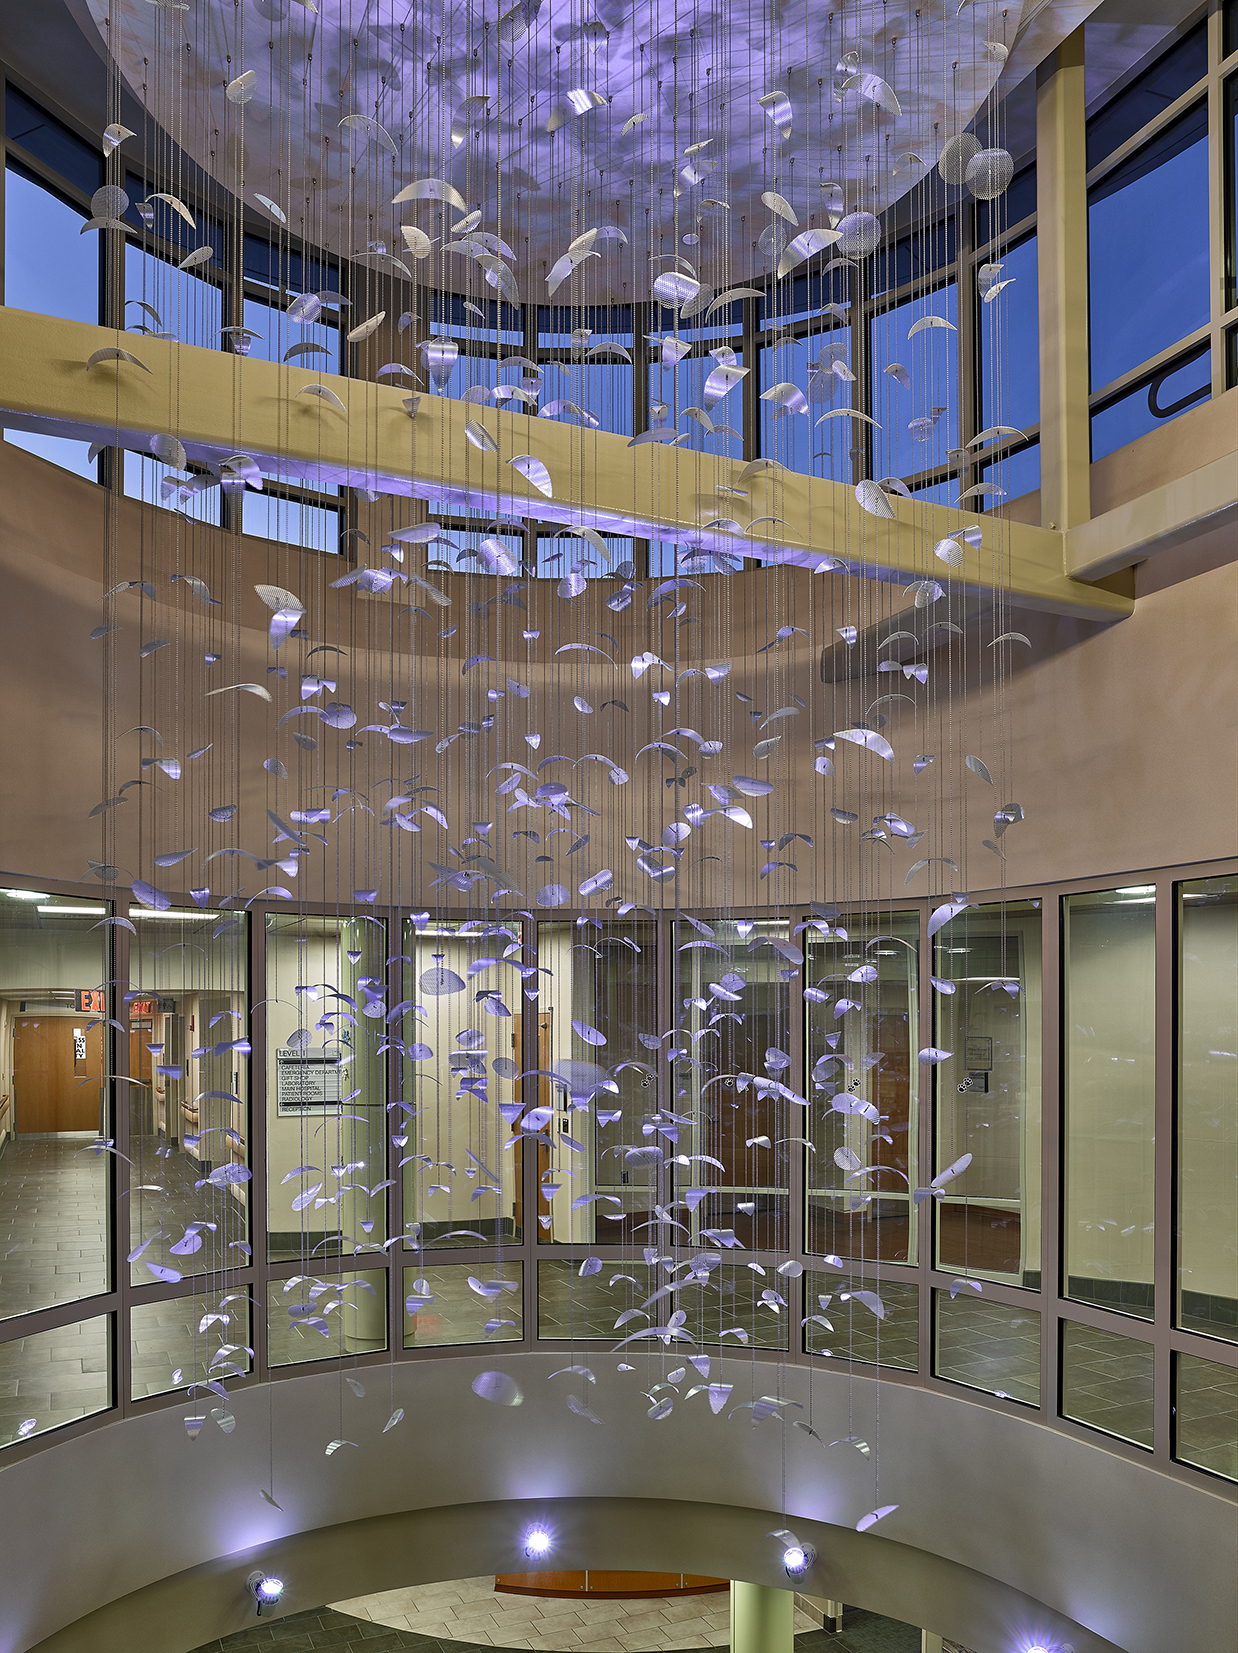 Constellation II suspended sculpture by Talley Fisher in a rotunda in Mount Nittany Medical Center.